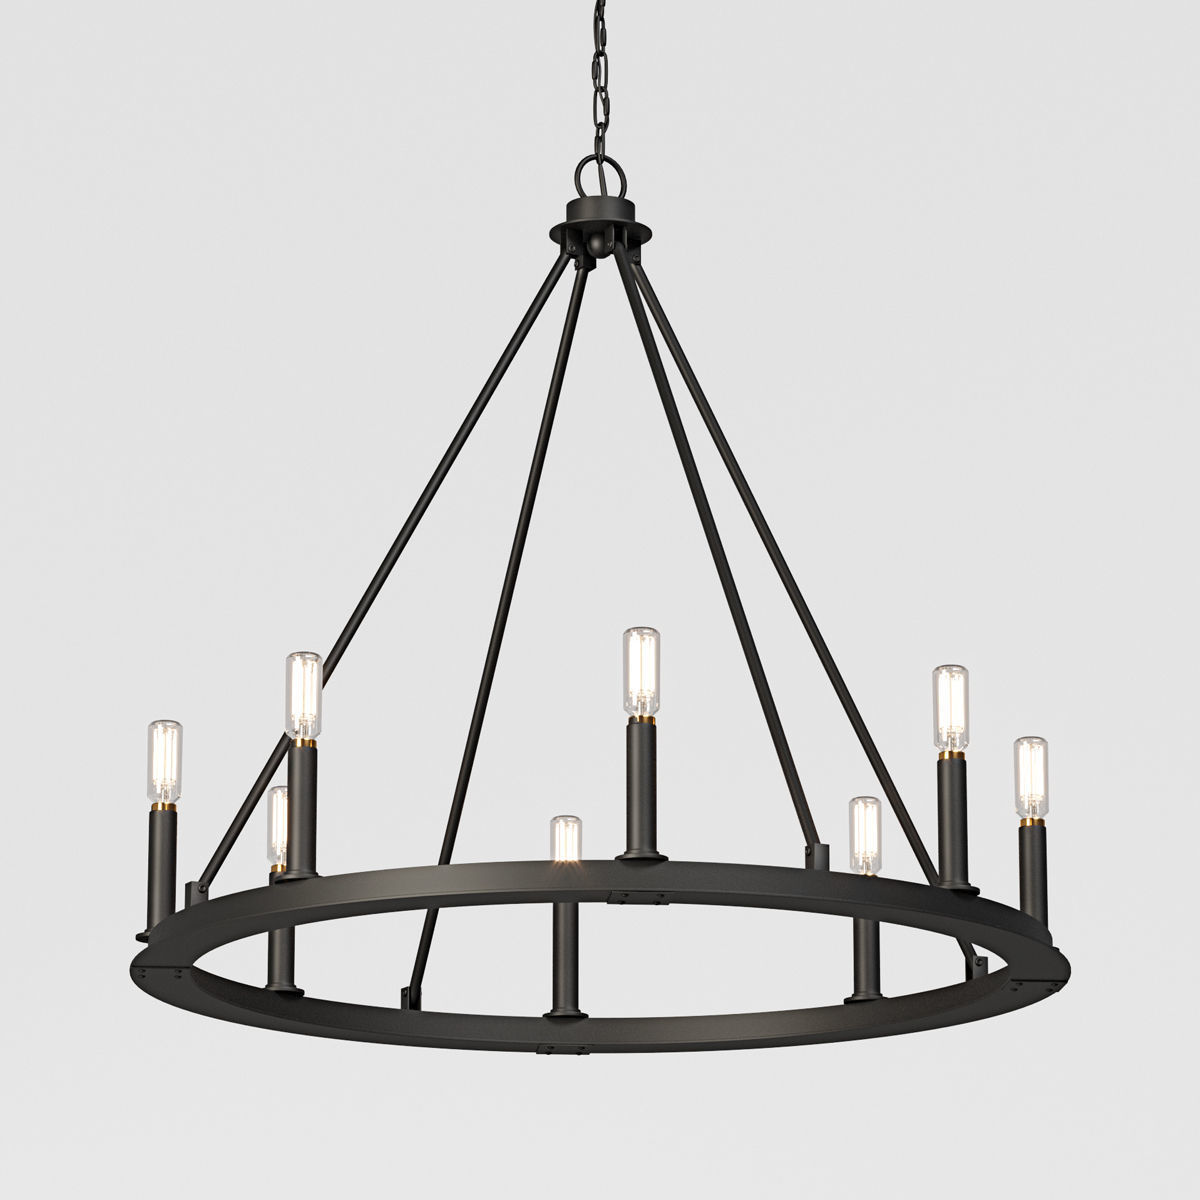 Minimalist Iron Ring Chandelier 8 Light